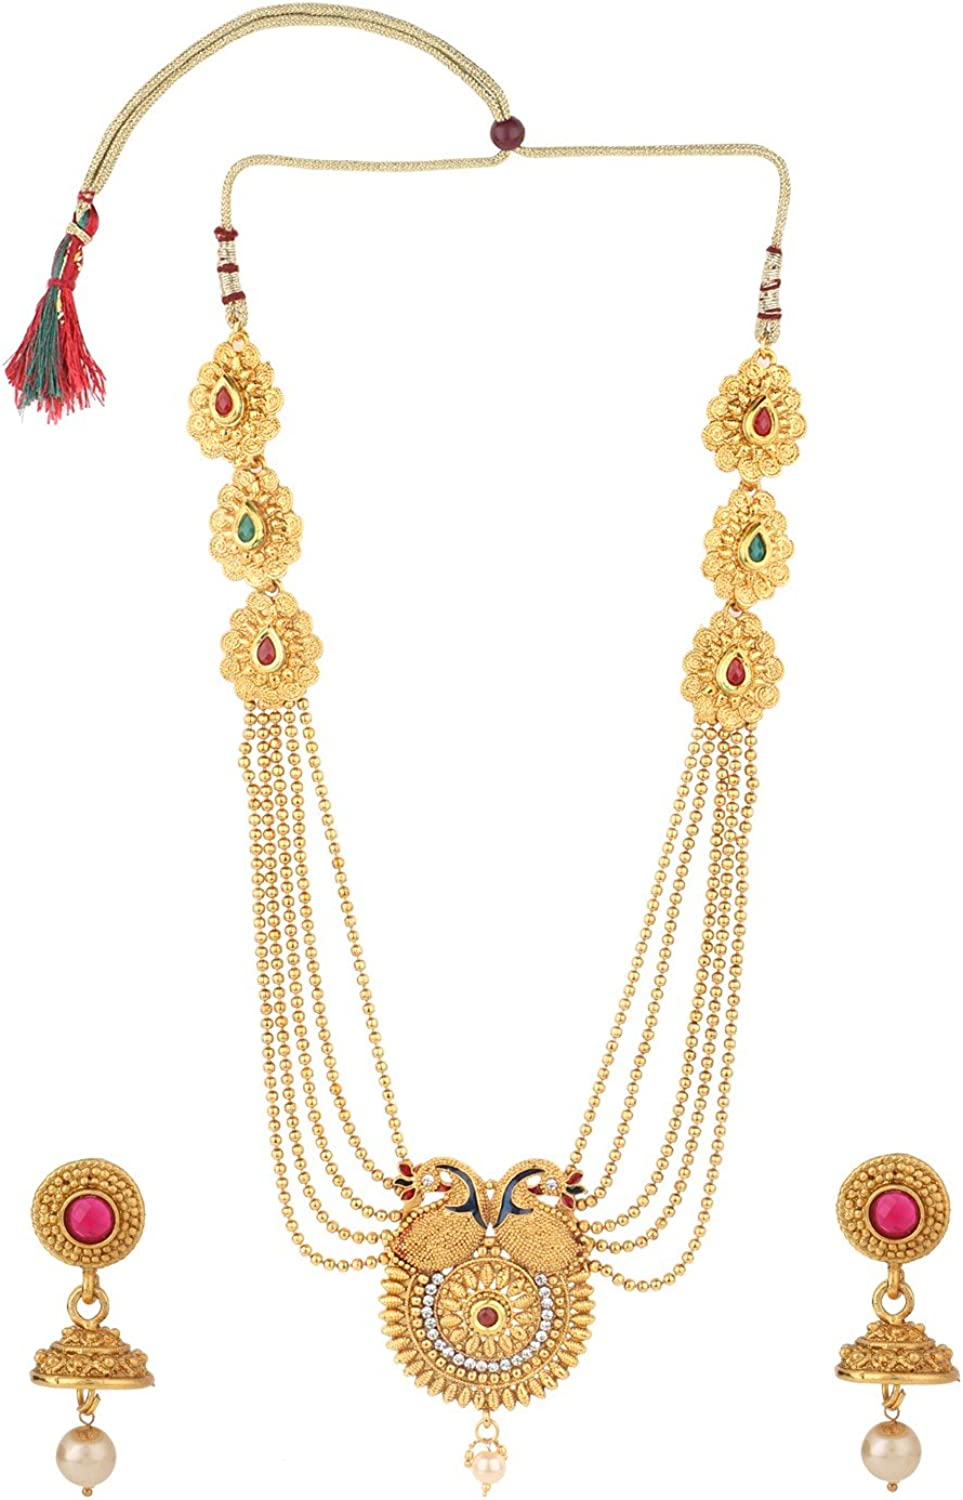 Efulgenz Indian Ethnic Bollywood Traditional Faux Ruby Emerald Rhinestone Heavy Bridal Designer Multistranded Peacock Lariat Necklace and Earrings Jewelry Set for Women and Girls